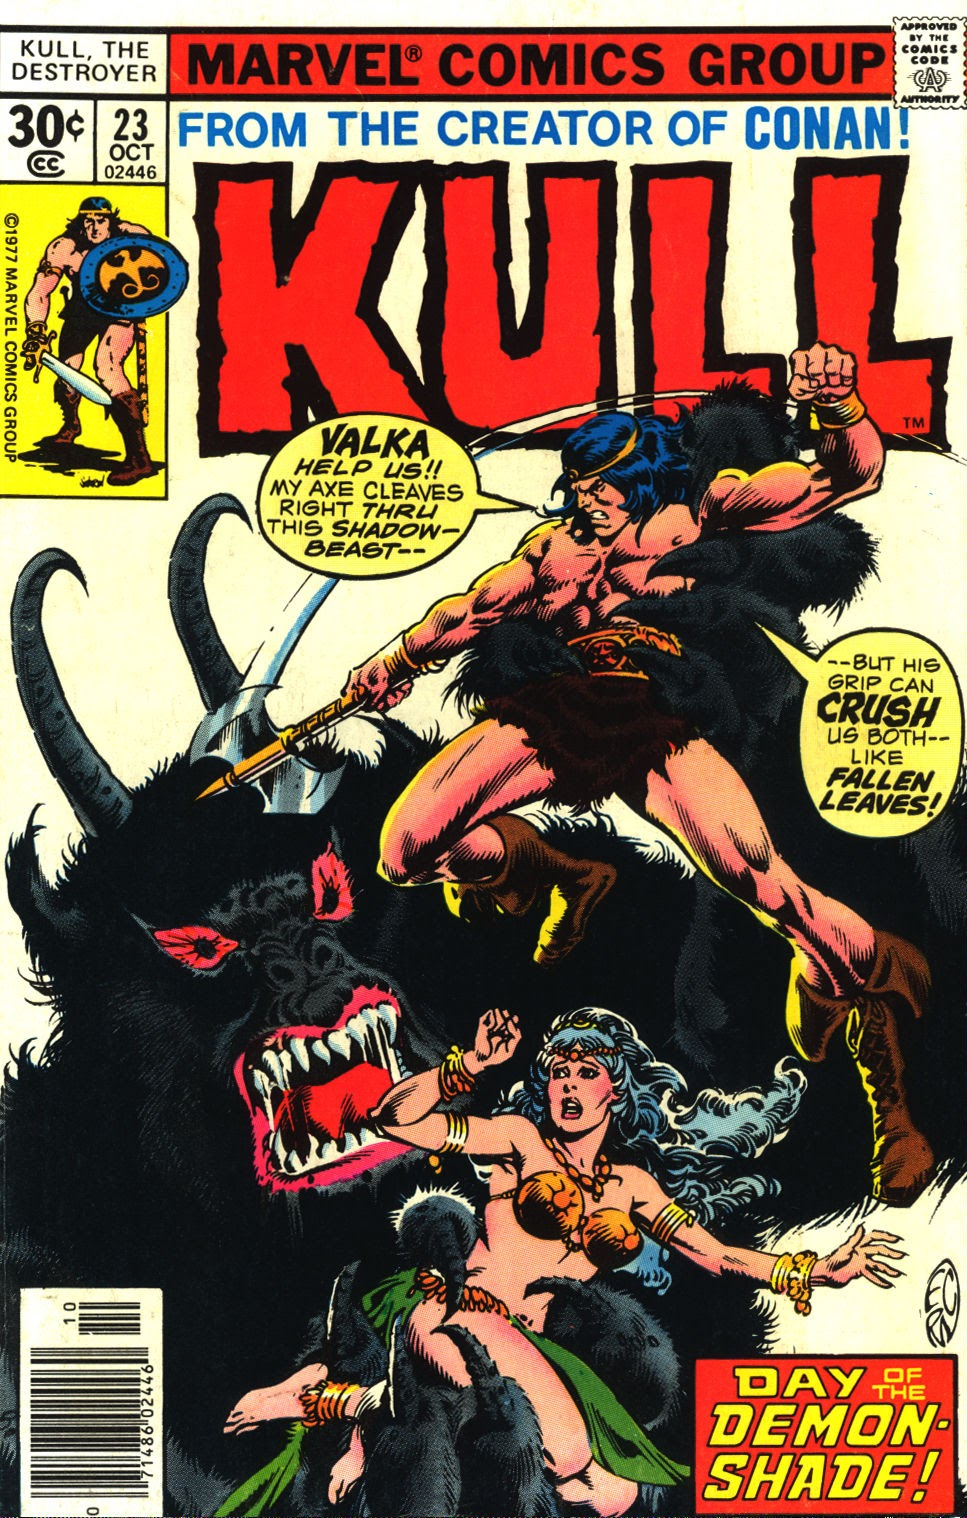 Kull The Destroyer issue 23 - Page 1